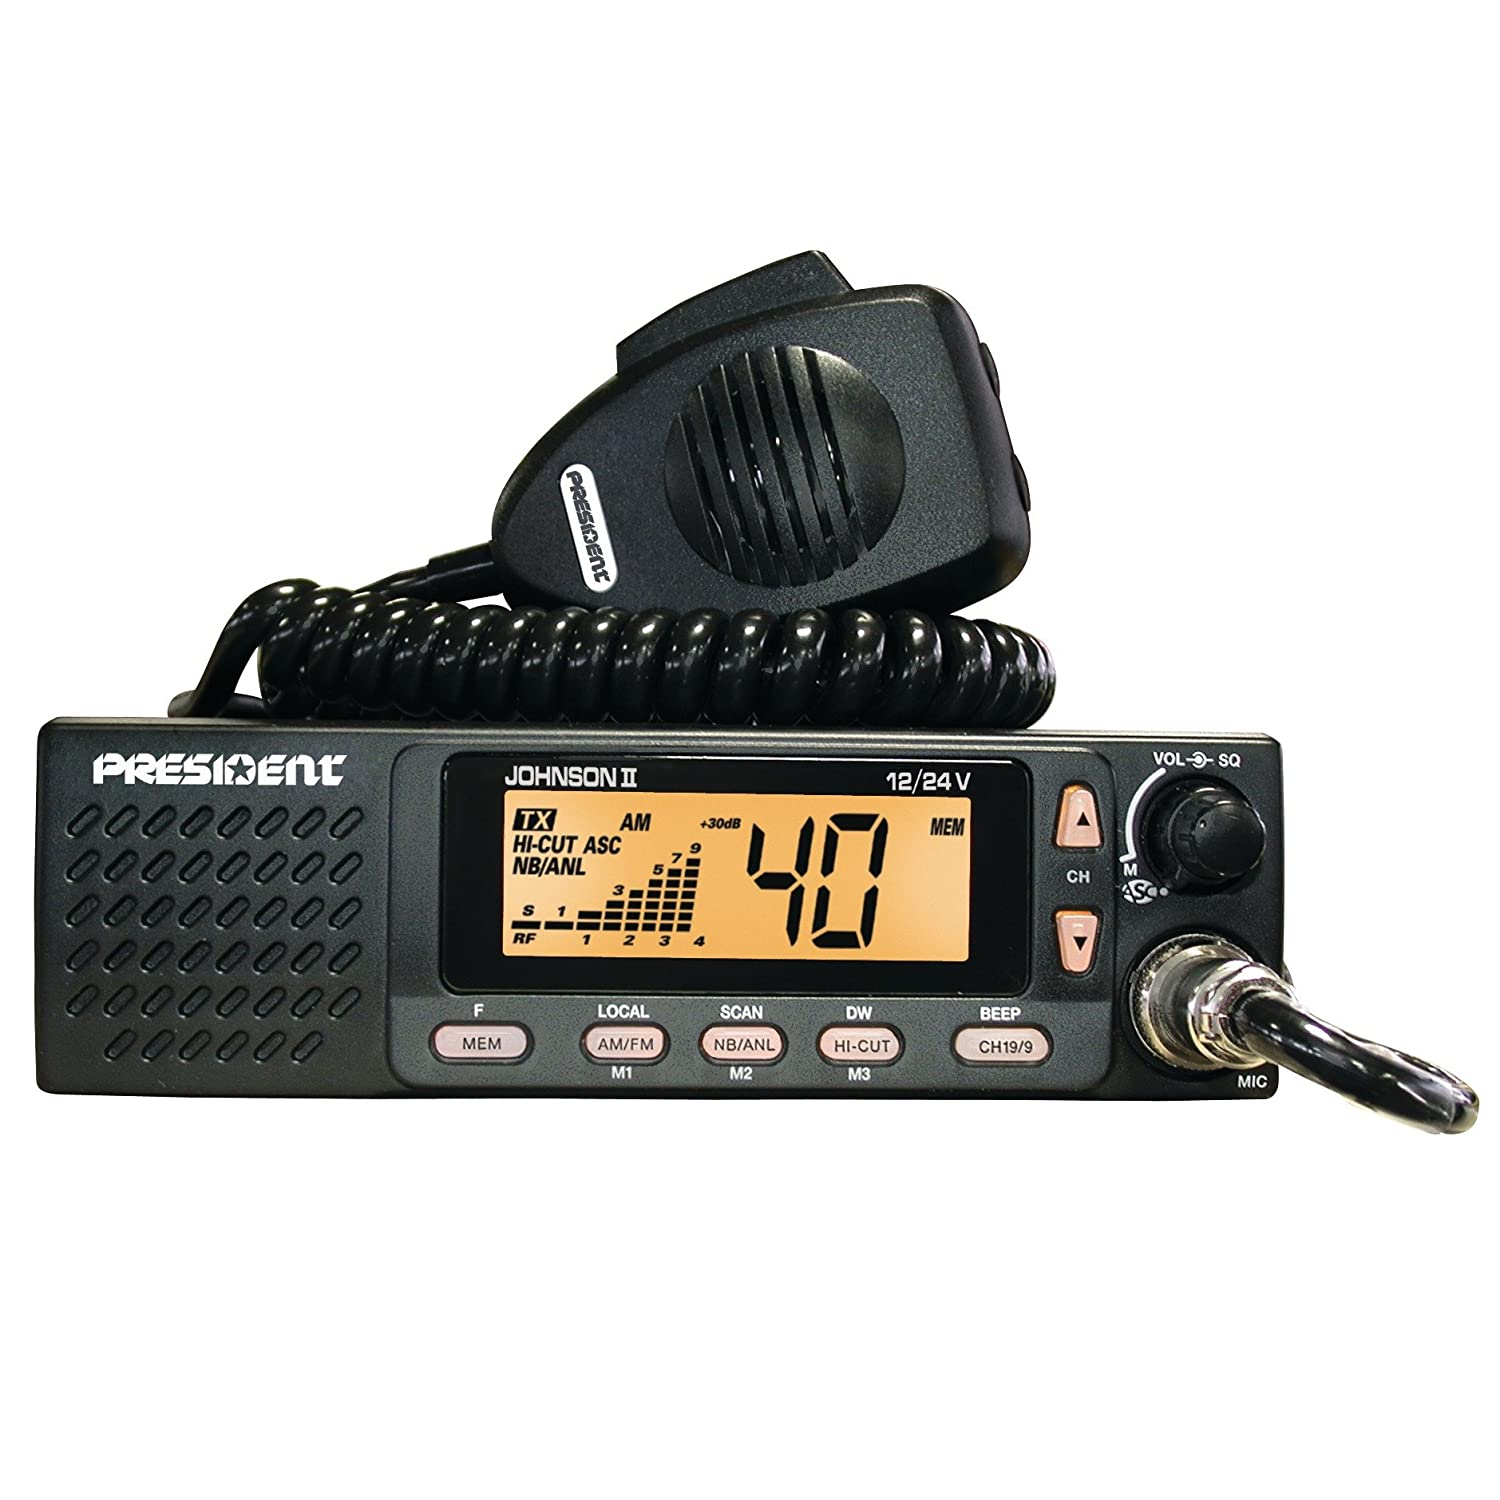 President Johnson II 12/24 CB Radio